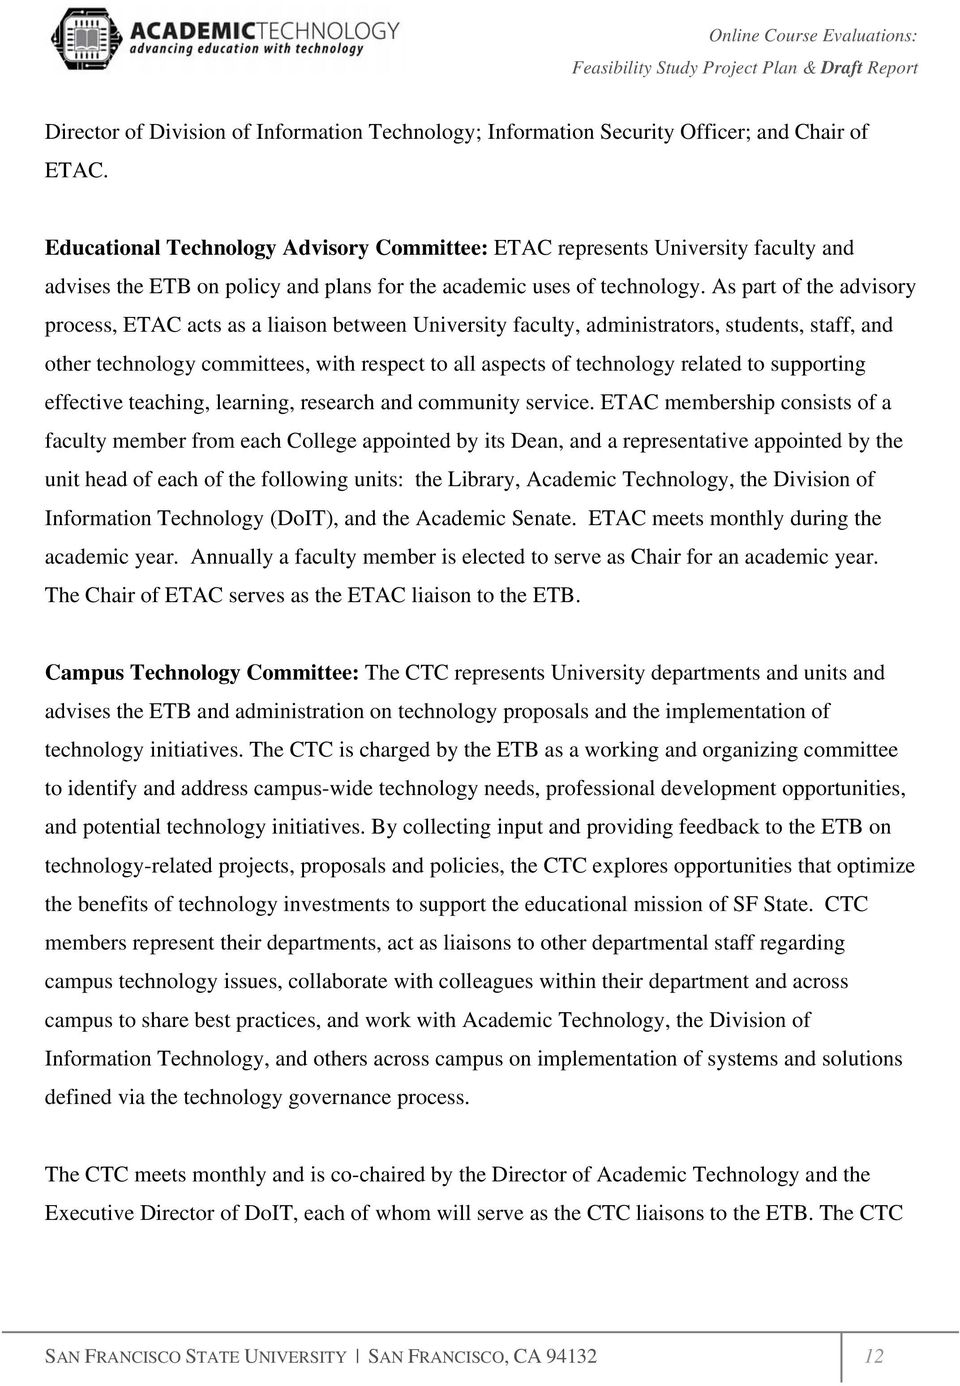 As part of the advisory process, ETAC acts as a liaison between University faculty, administrators, students, staff, and other technology committees, with respect to all aspects of technology related